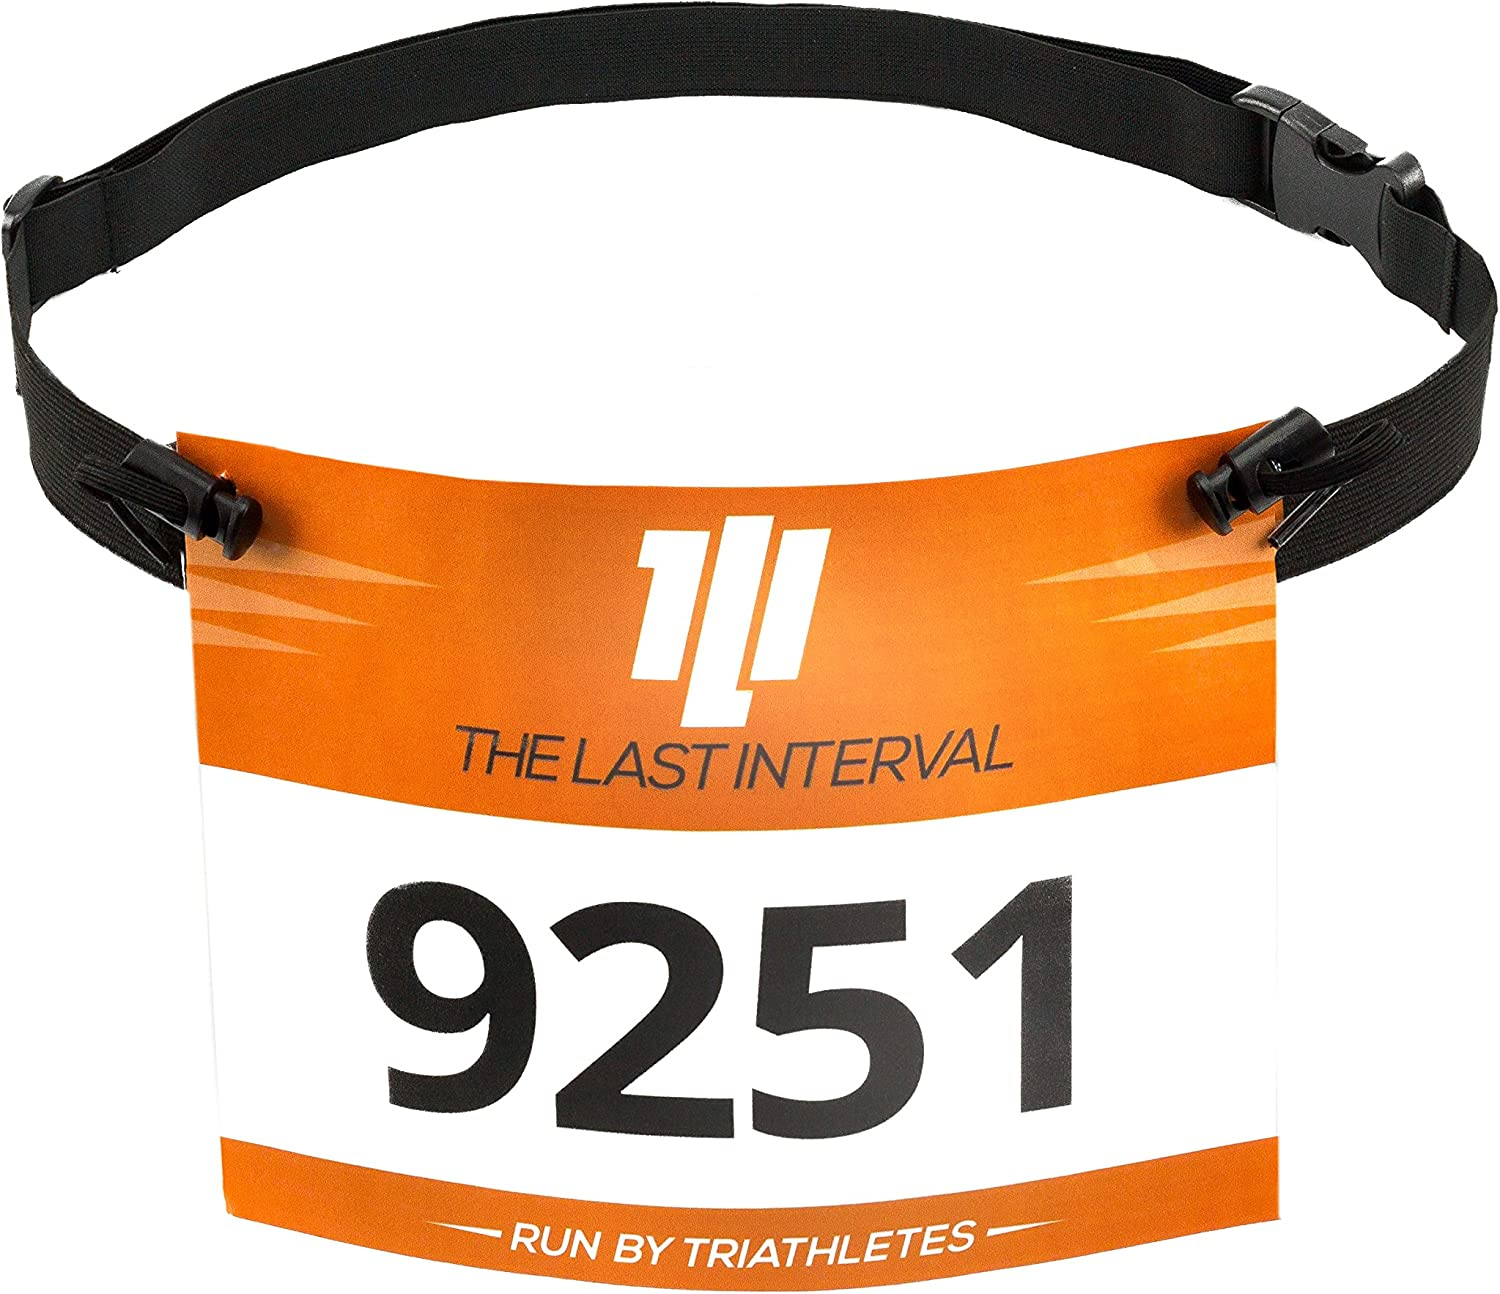 TLI Race Belt for Running, Cycling, Triathlon – Lightweight – Race Day Ready Triathlon Race Belt Designed for Speed, Ease of Use, and Convenience